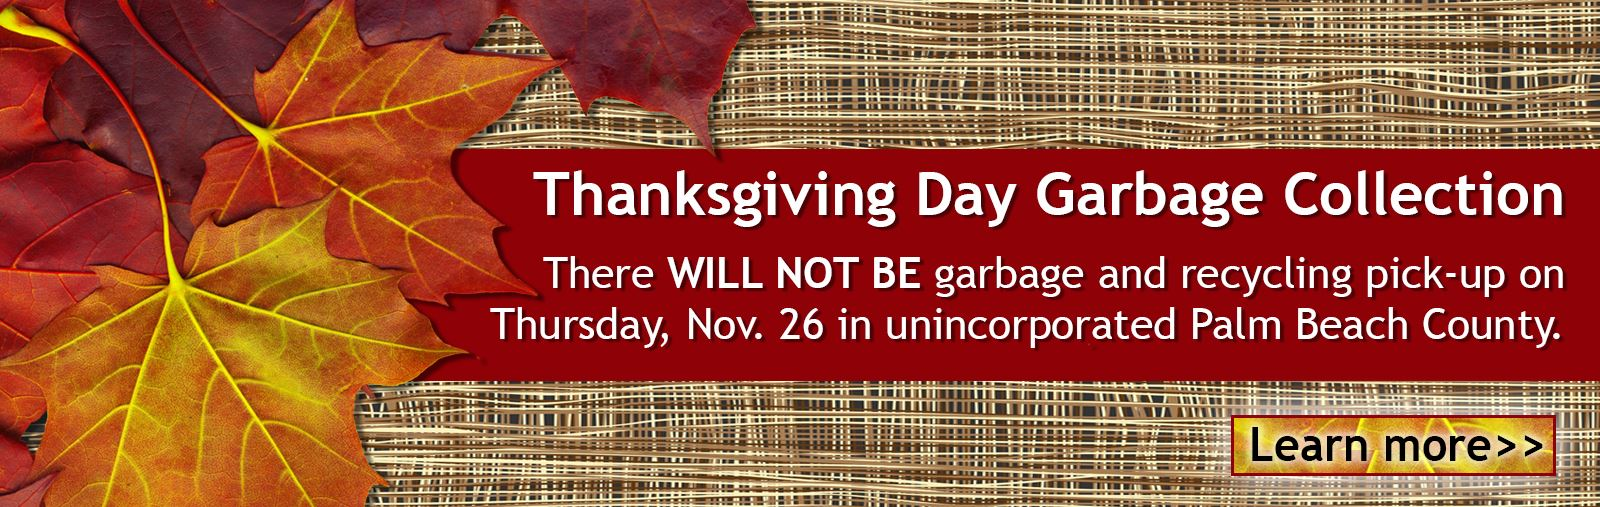 2020 Thanksgiving Day garbage collection graphic